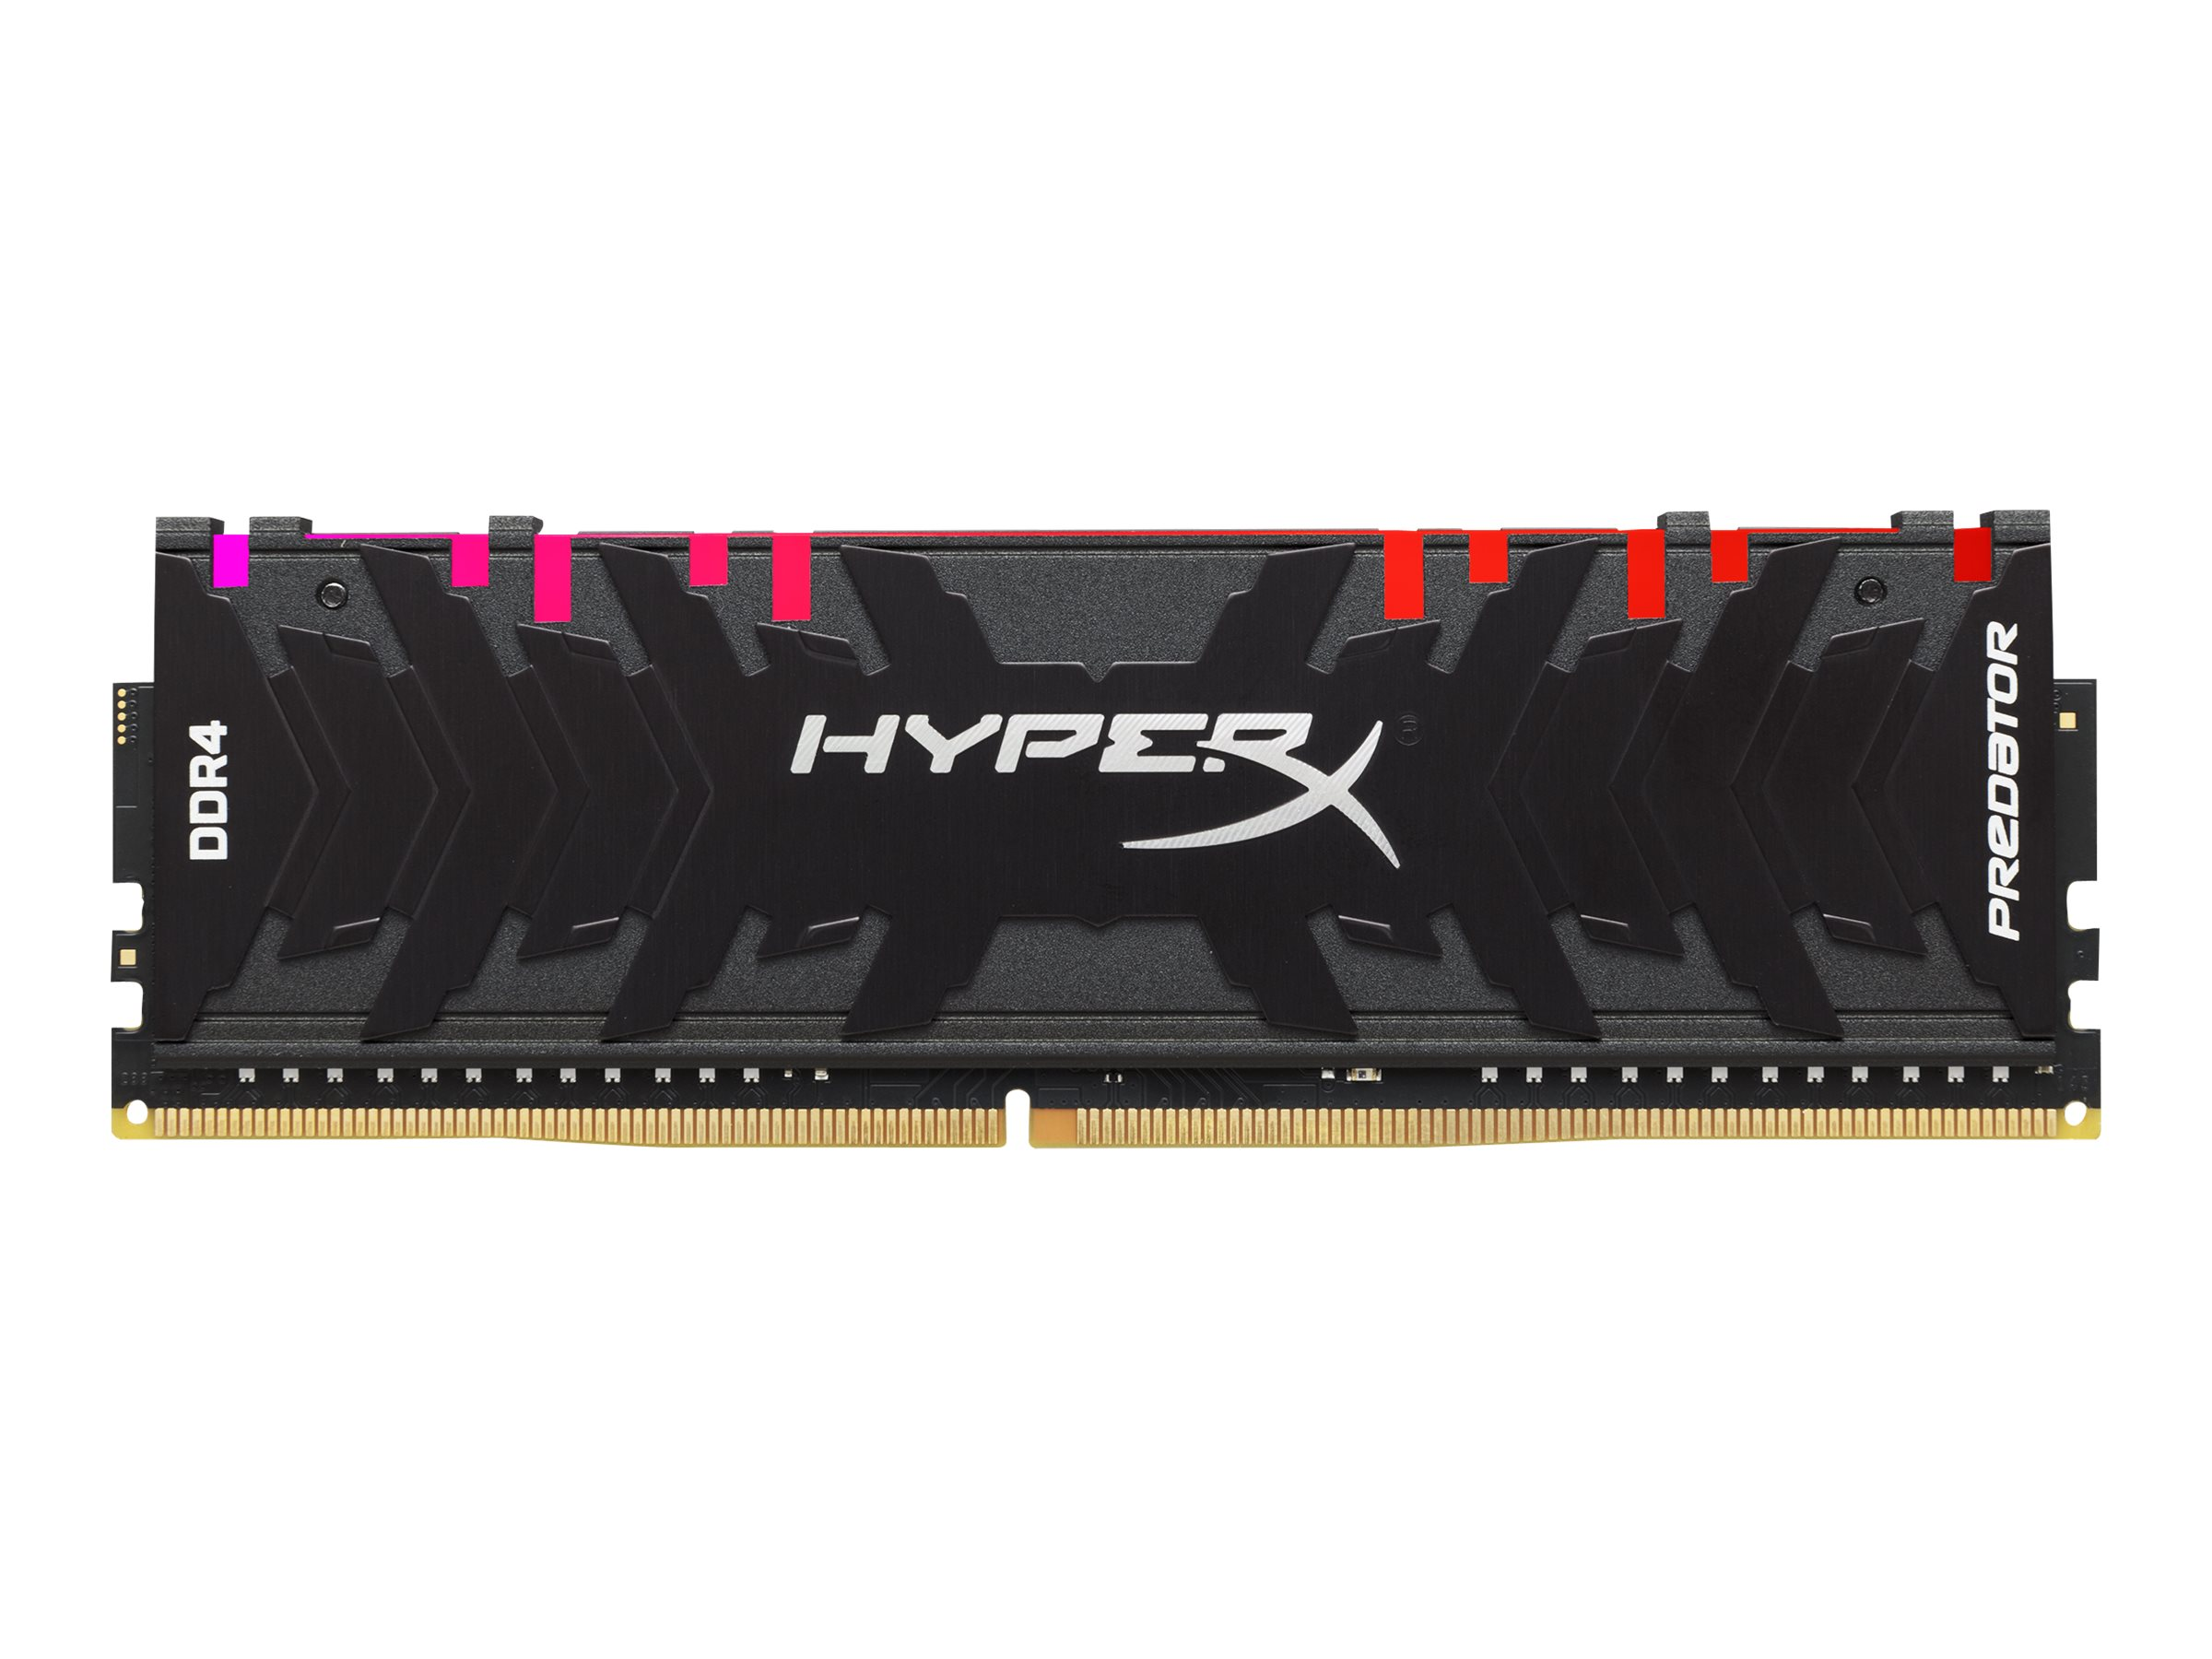 Kingston HyperX Predator RGB - DDR4 - 16 GB: 2 x 8 GB DIMM 288-PIN - 3200 MHz / PC4-25600 - CL16 - 1.35 V - ungepuffert - non-ECC - Schwarz